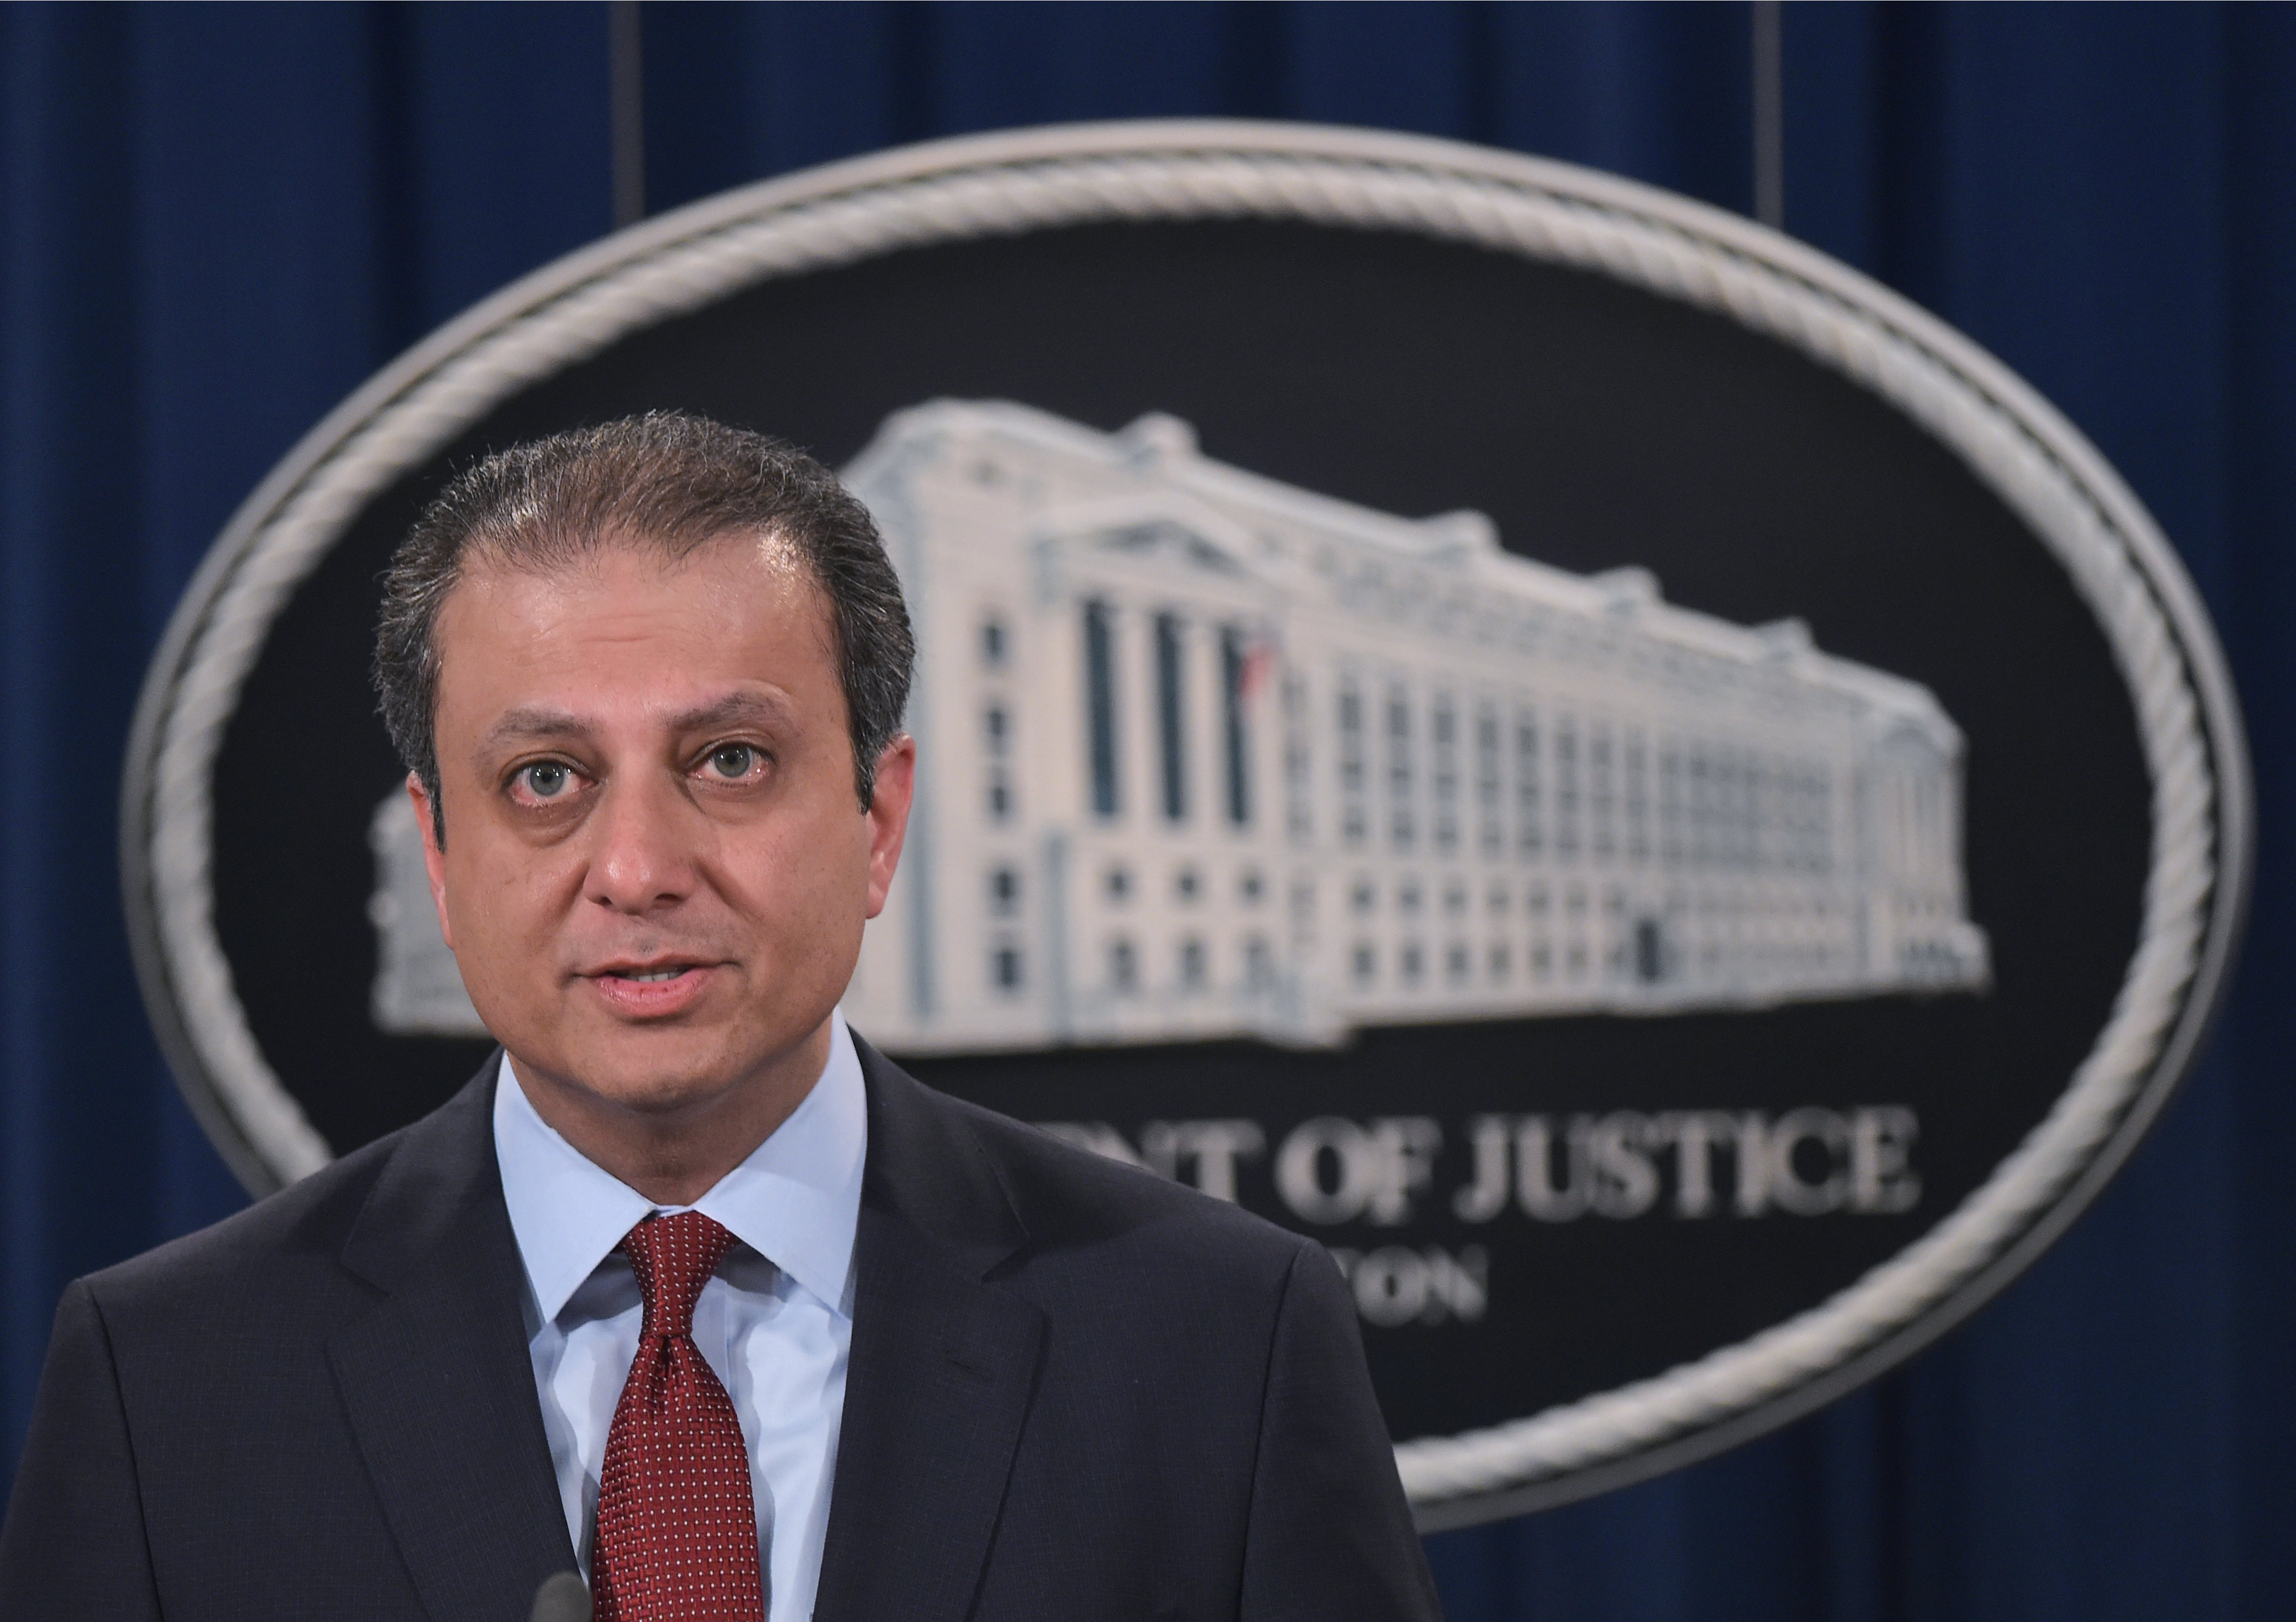 US Attorney of the Southern District of New York Preet Bharara speaks during a press conference today.